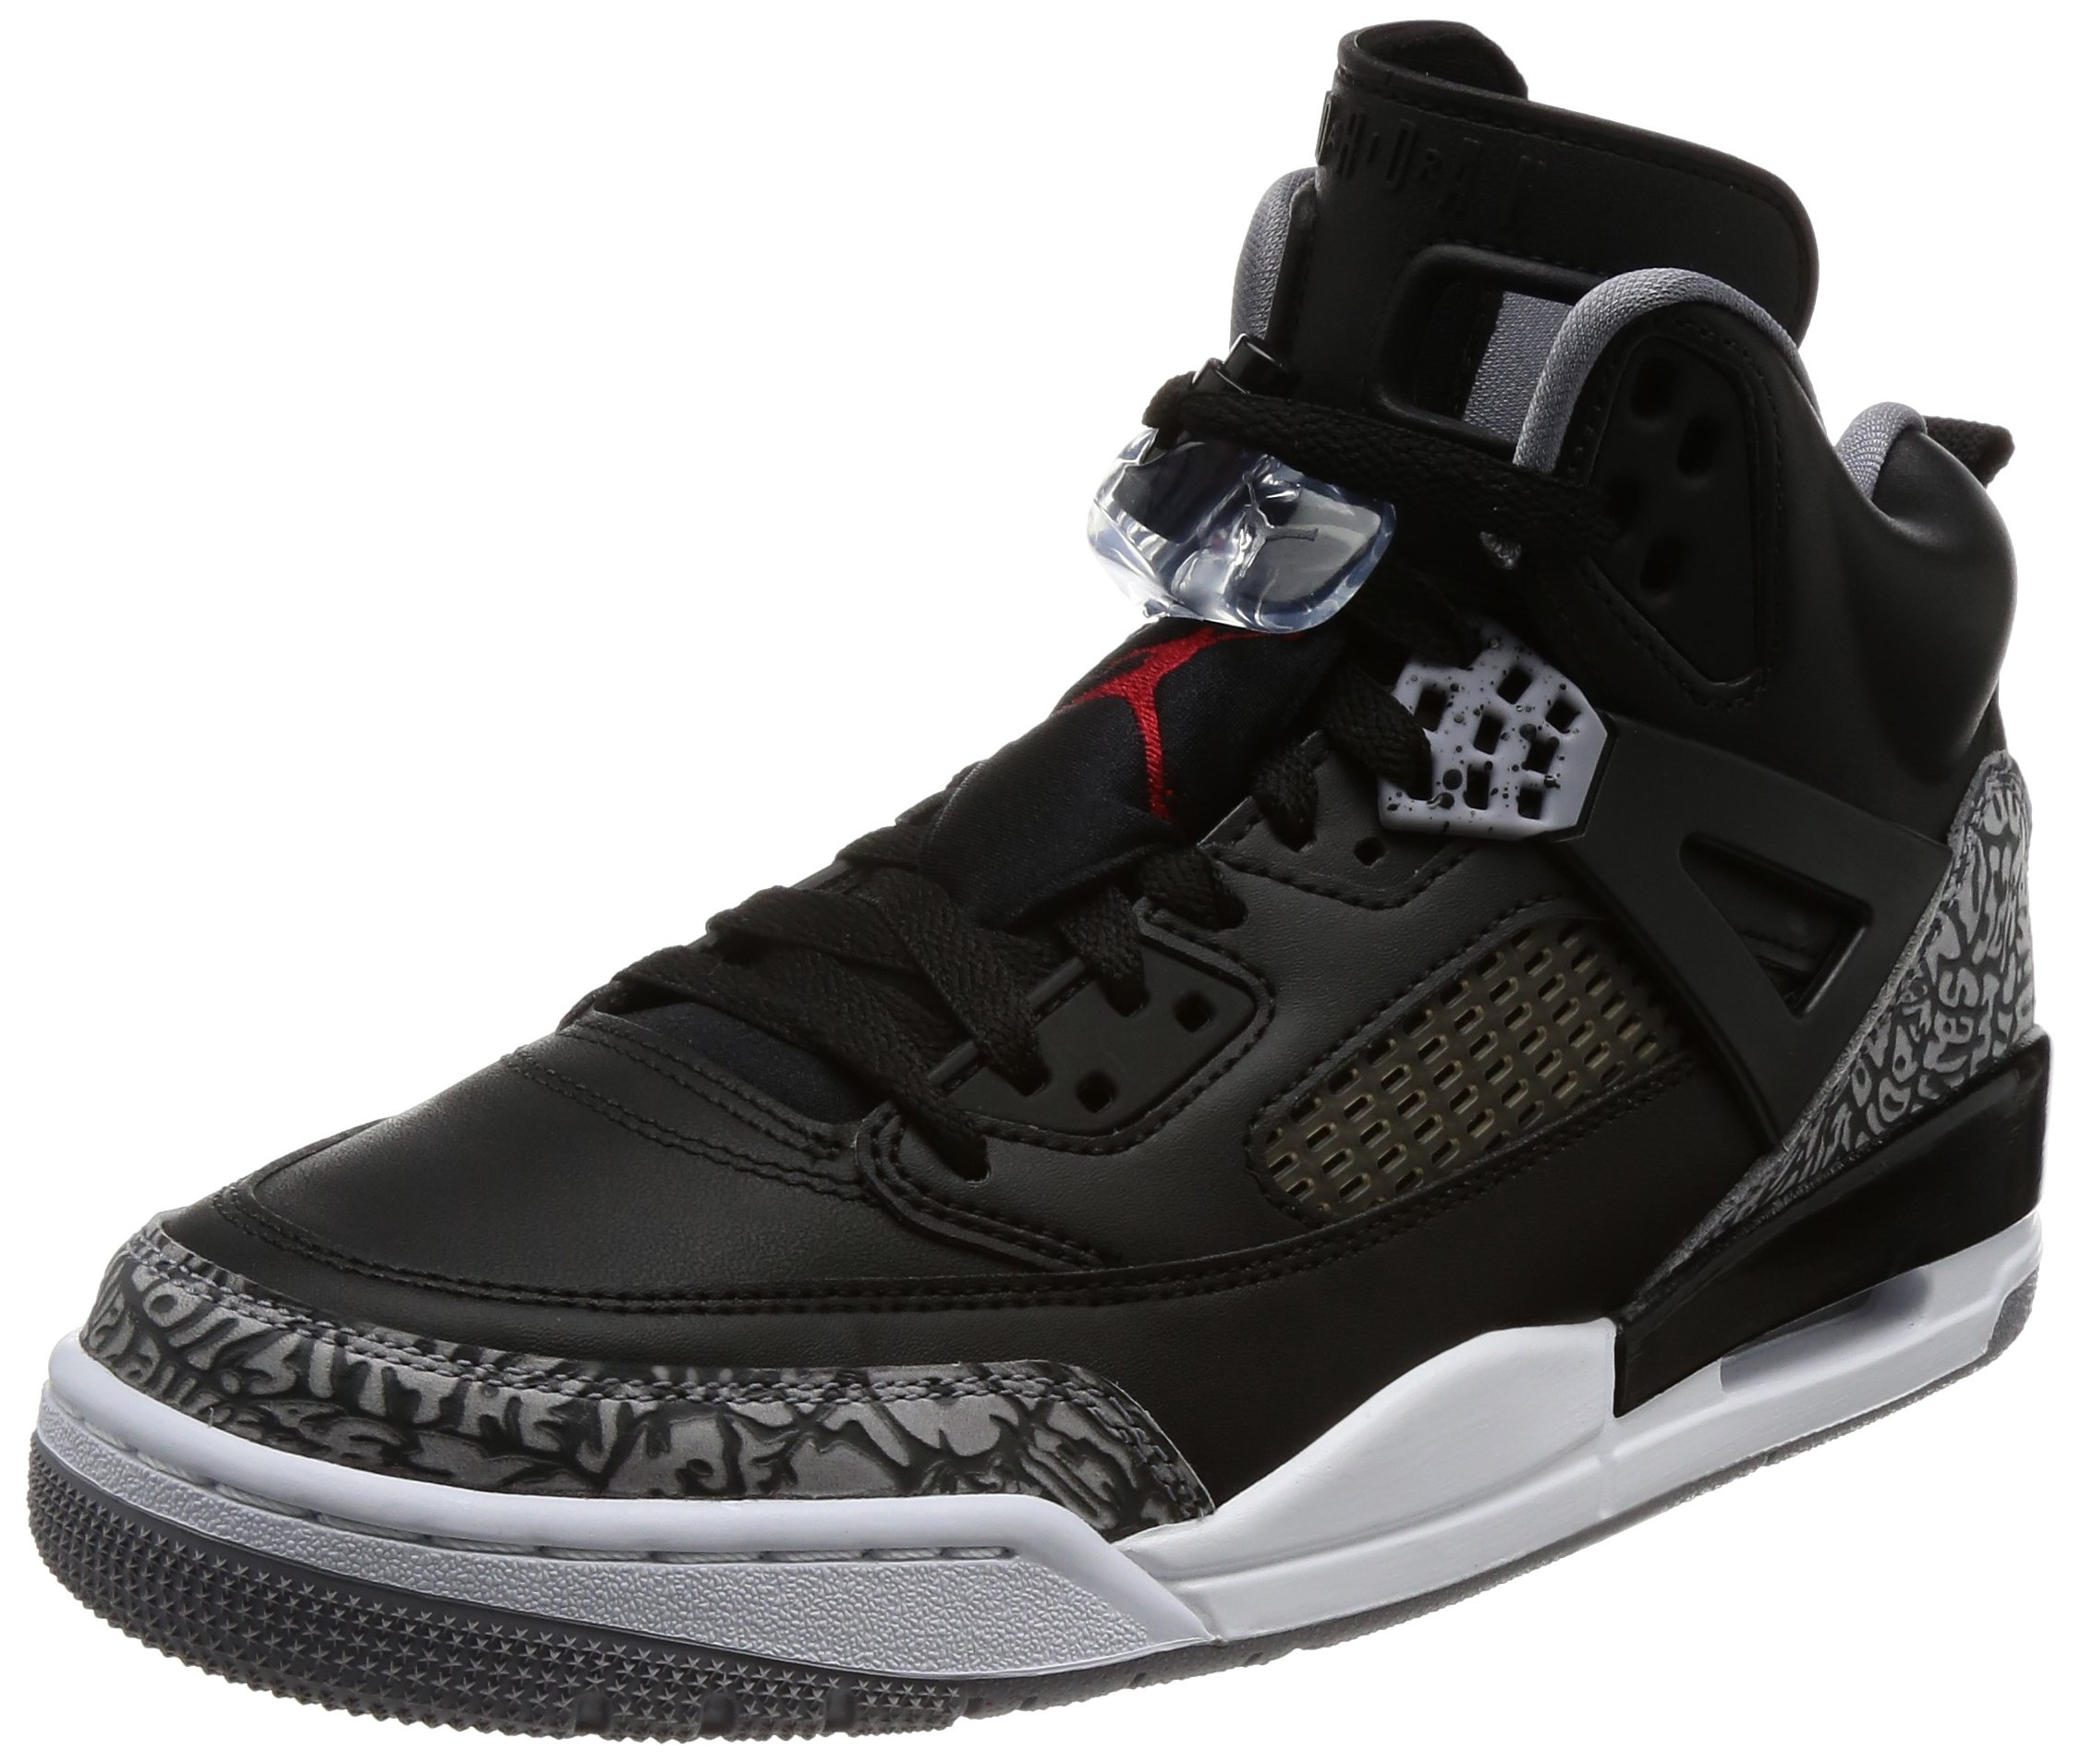 Jordan Spizike Mens Basketball Shoes Black/Grey/Red 315371-034 (10 D(M) US)